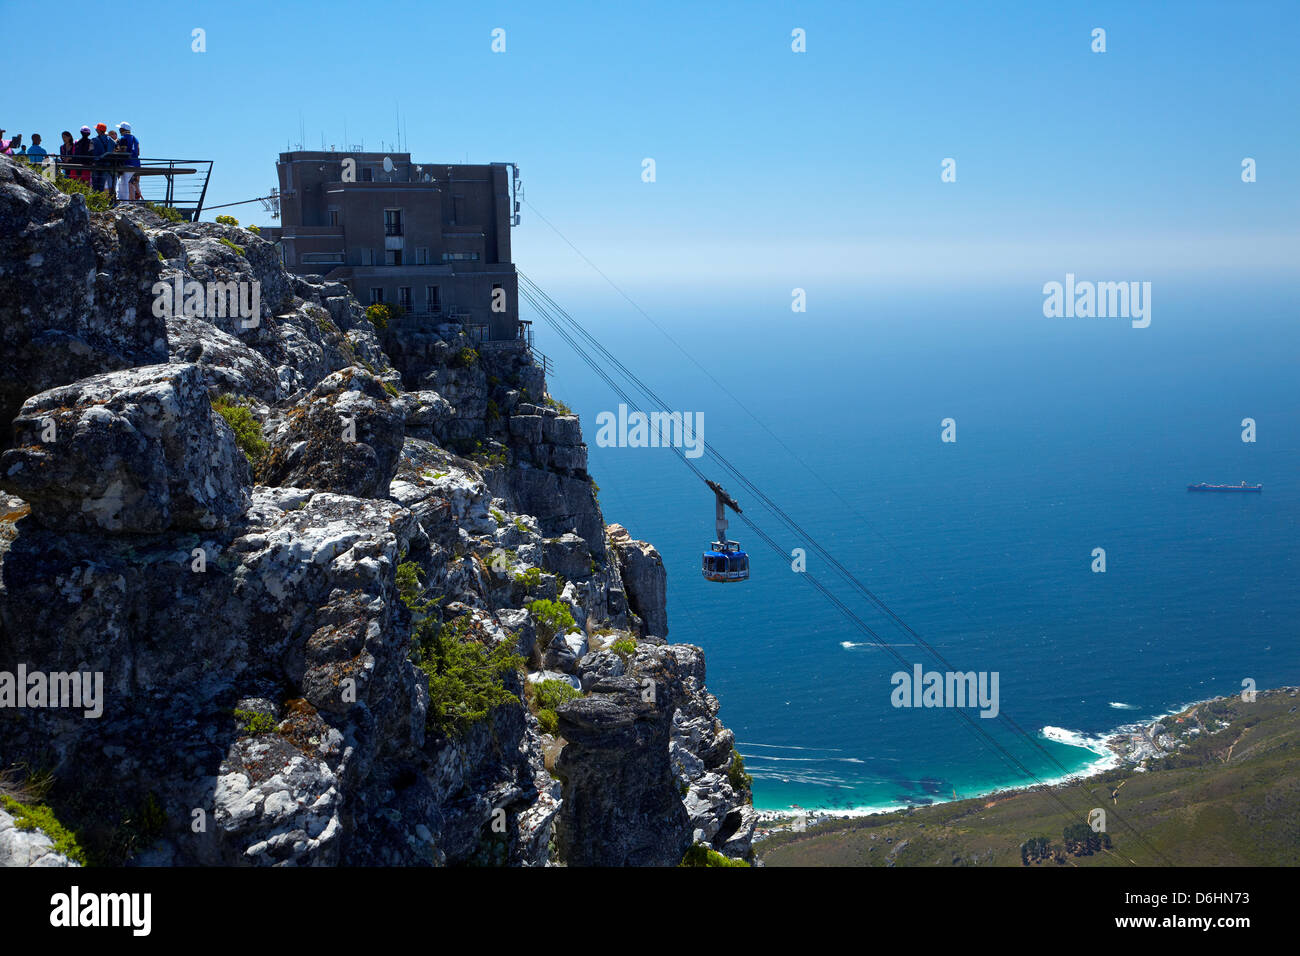 Tourists at viewpoint and Table Mountain Aerial Cableway, Cape Town, South Africa - Stock Image